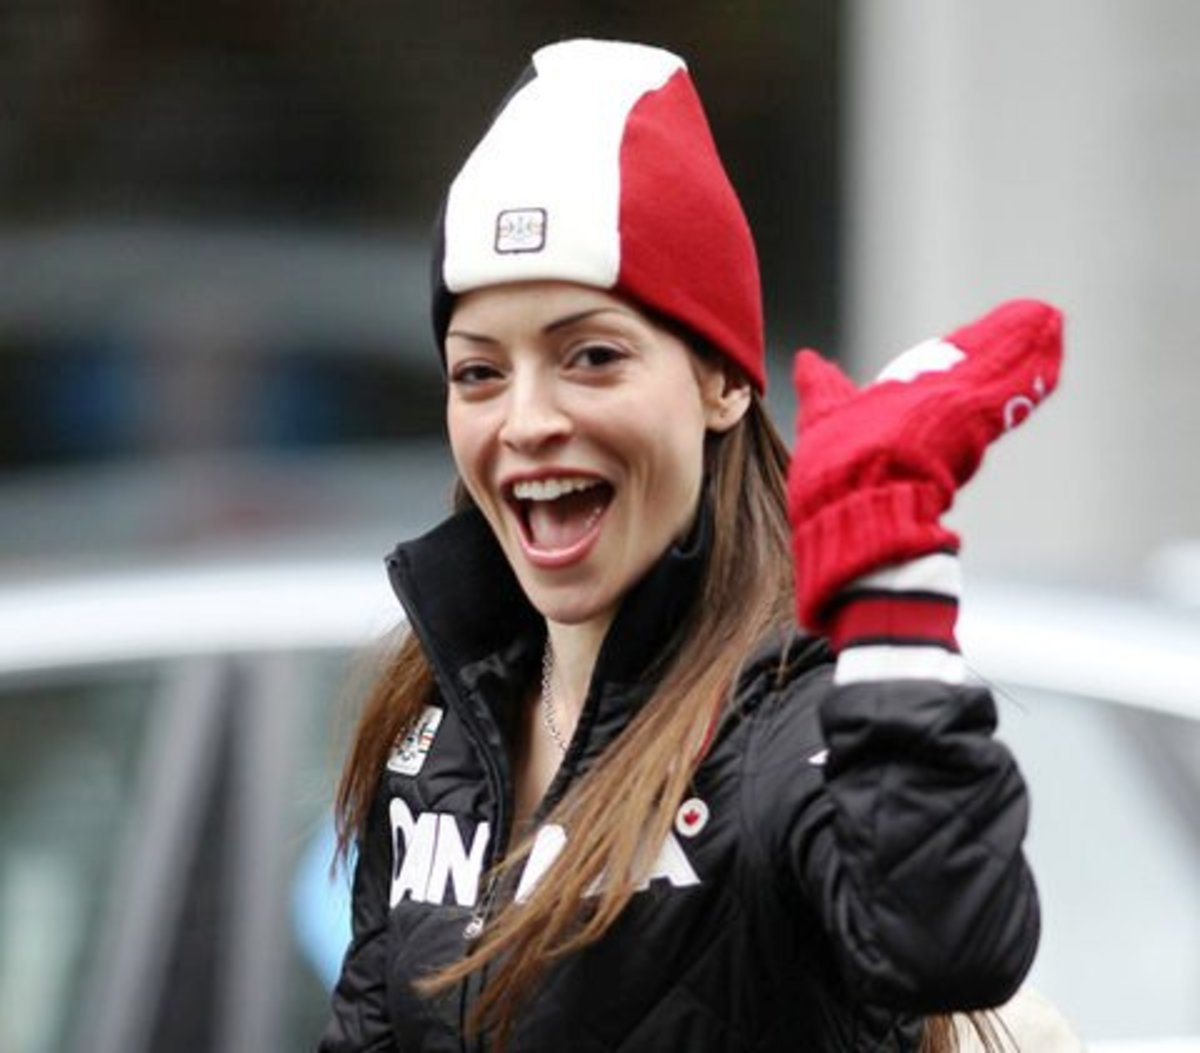 Emmanuelle Vaugier in patriotic gear at the Vancouver Winter Olympics